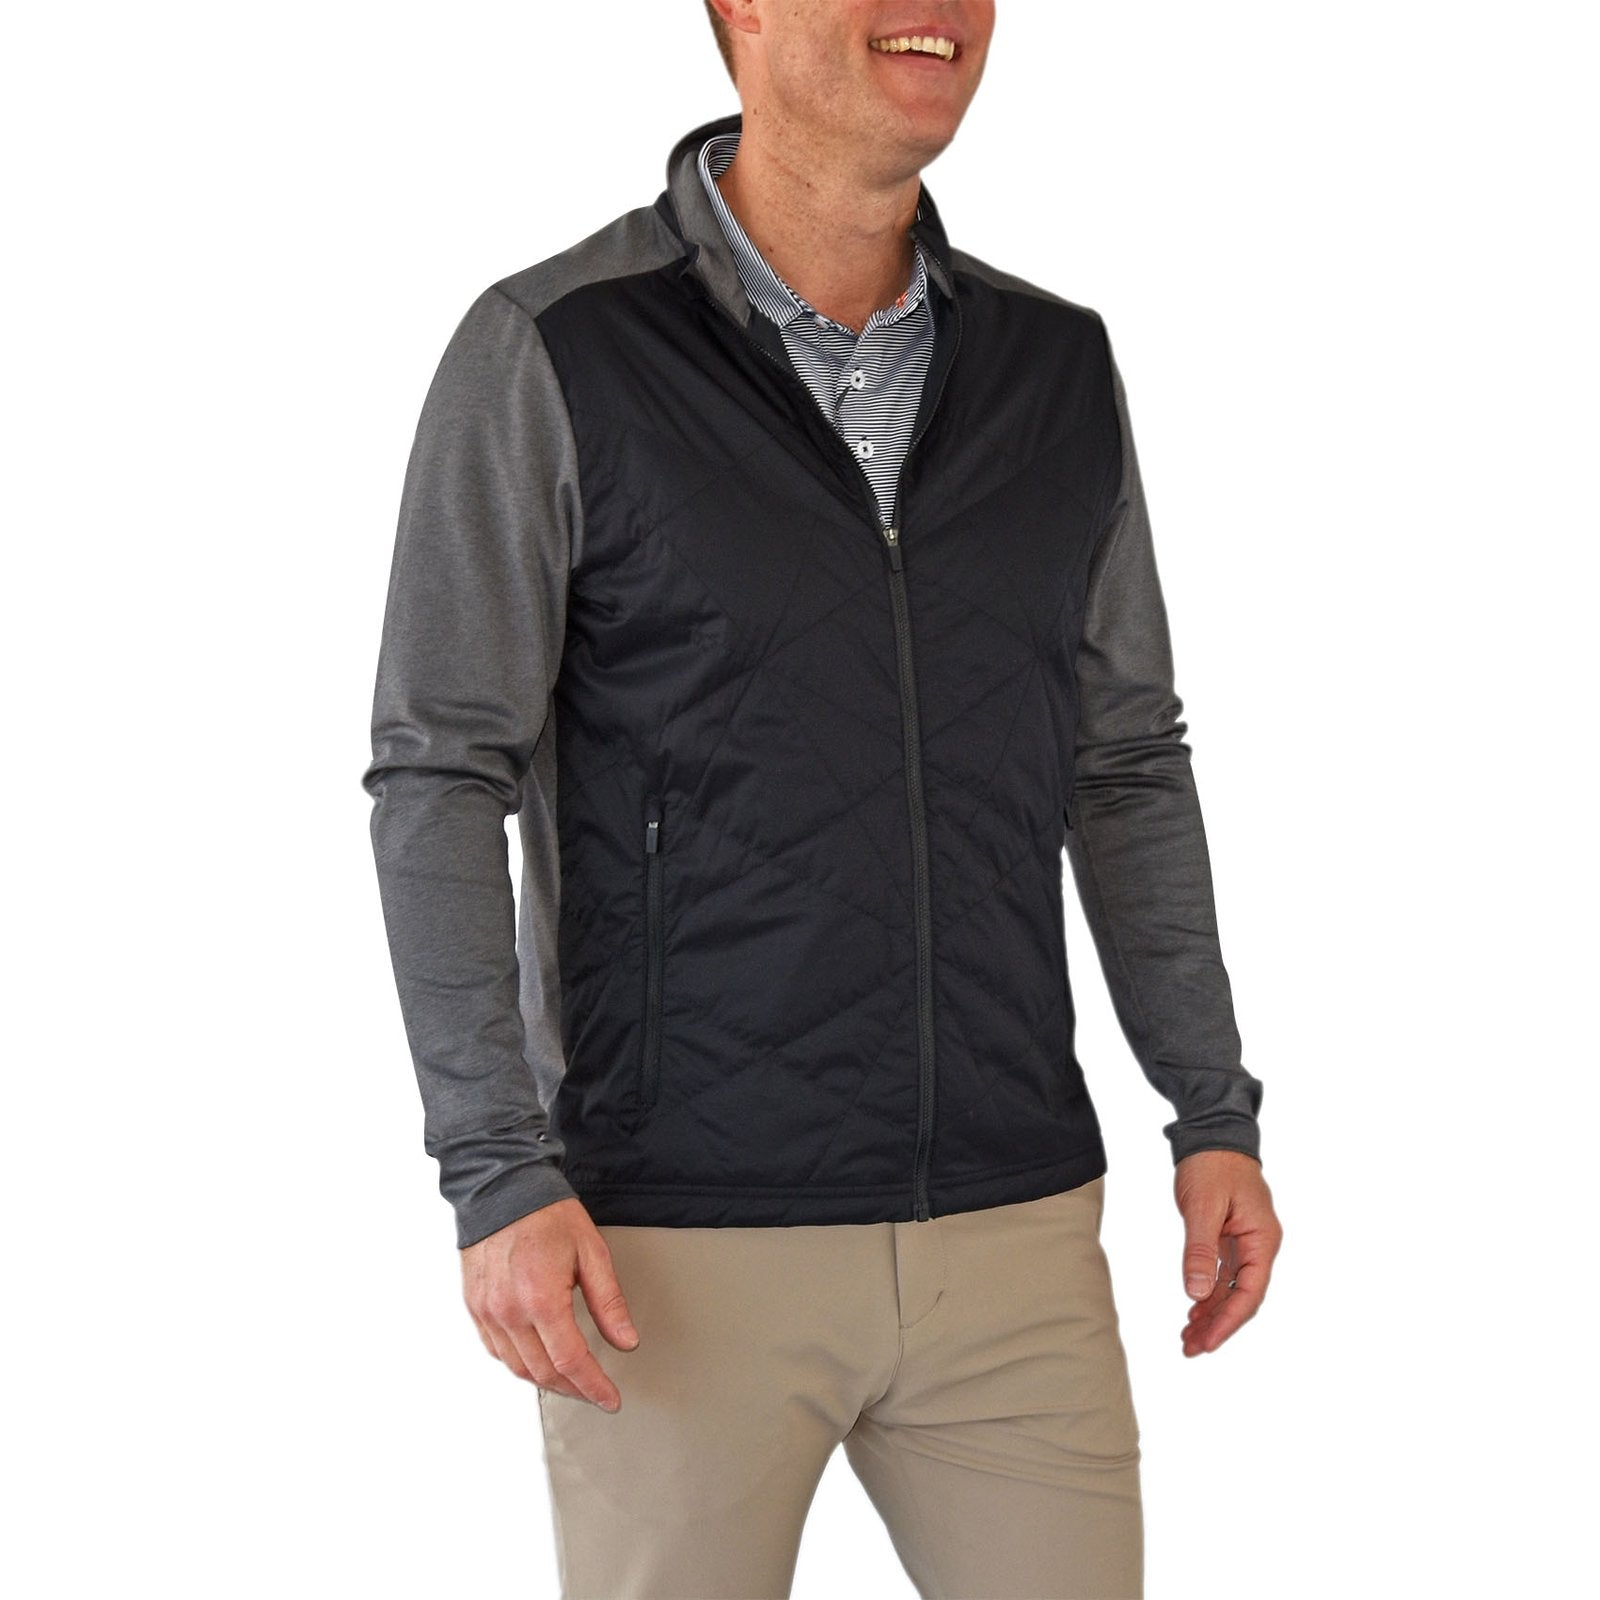 KJUS Retention Jacket - Black/Steel Grey Melange